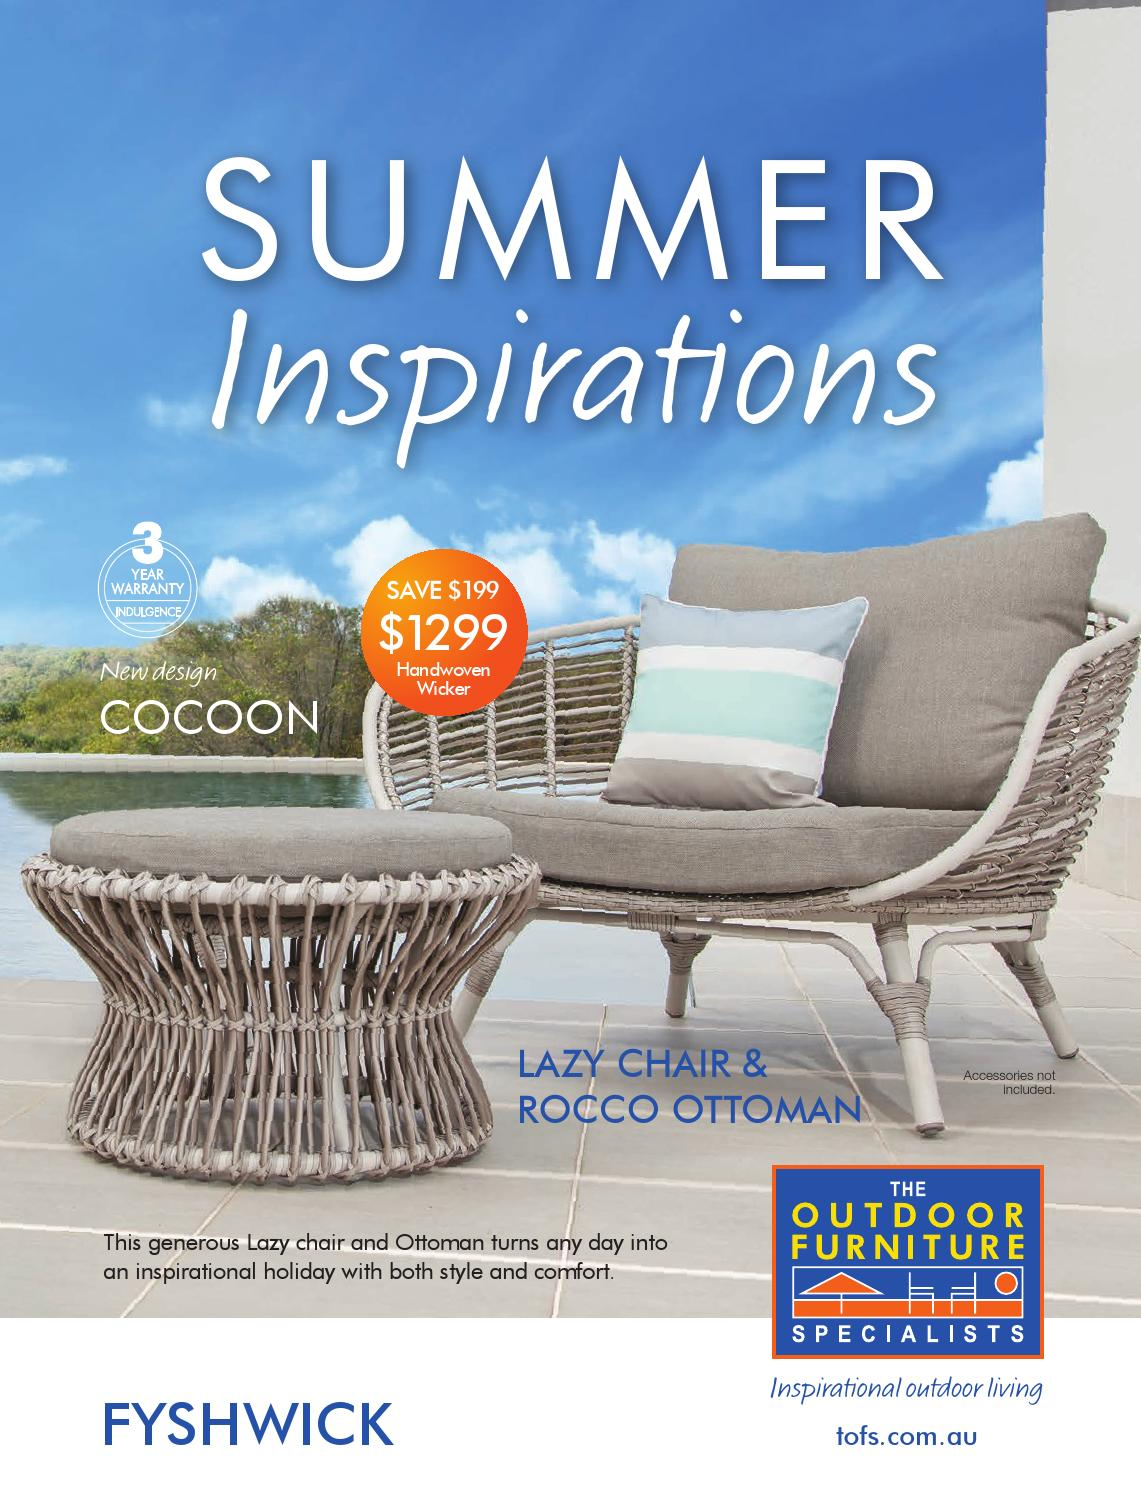 Great The Outdoor Furniture Specialists   Fyshwick. Summer Inspirations Catalogue Part 4